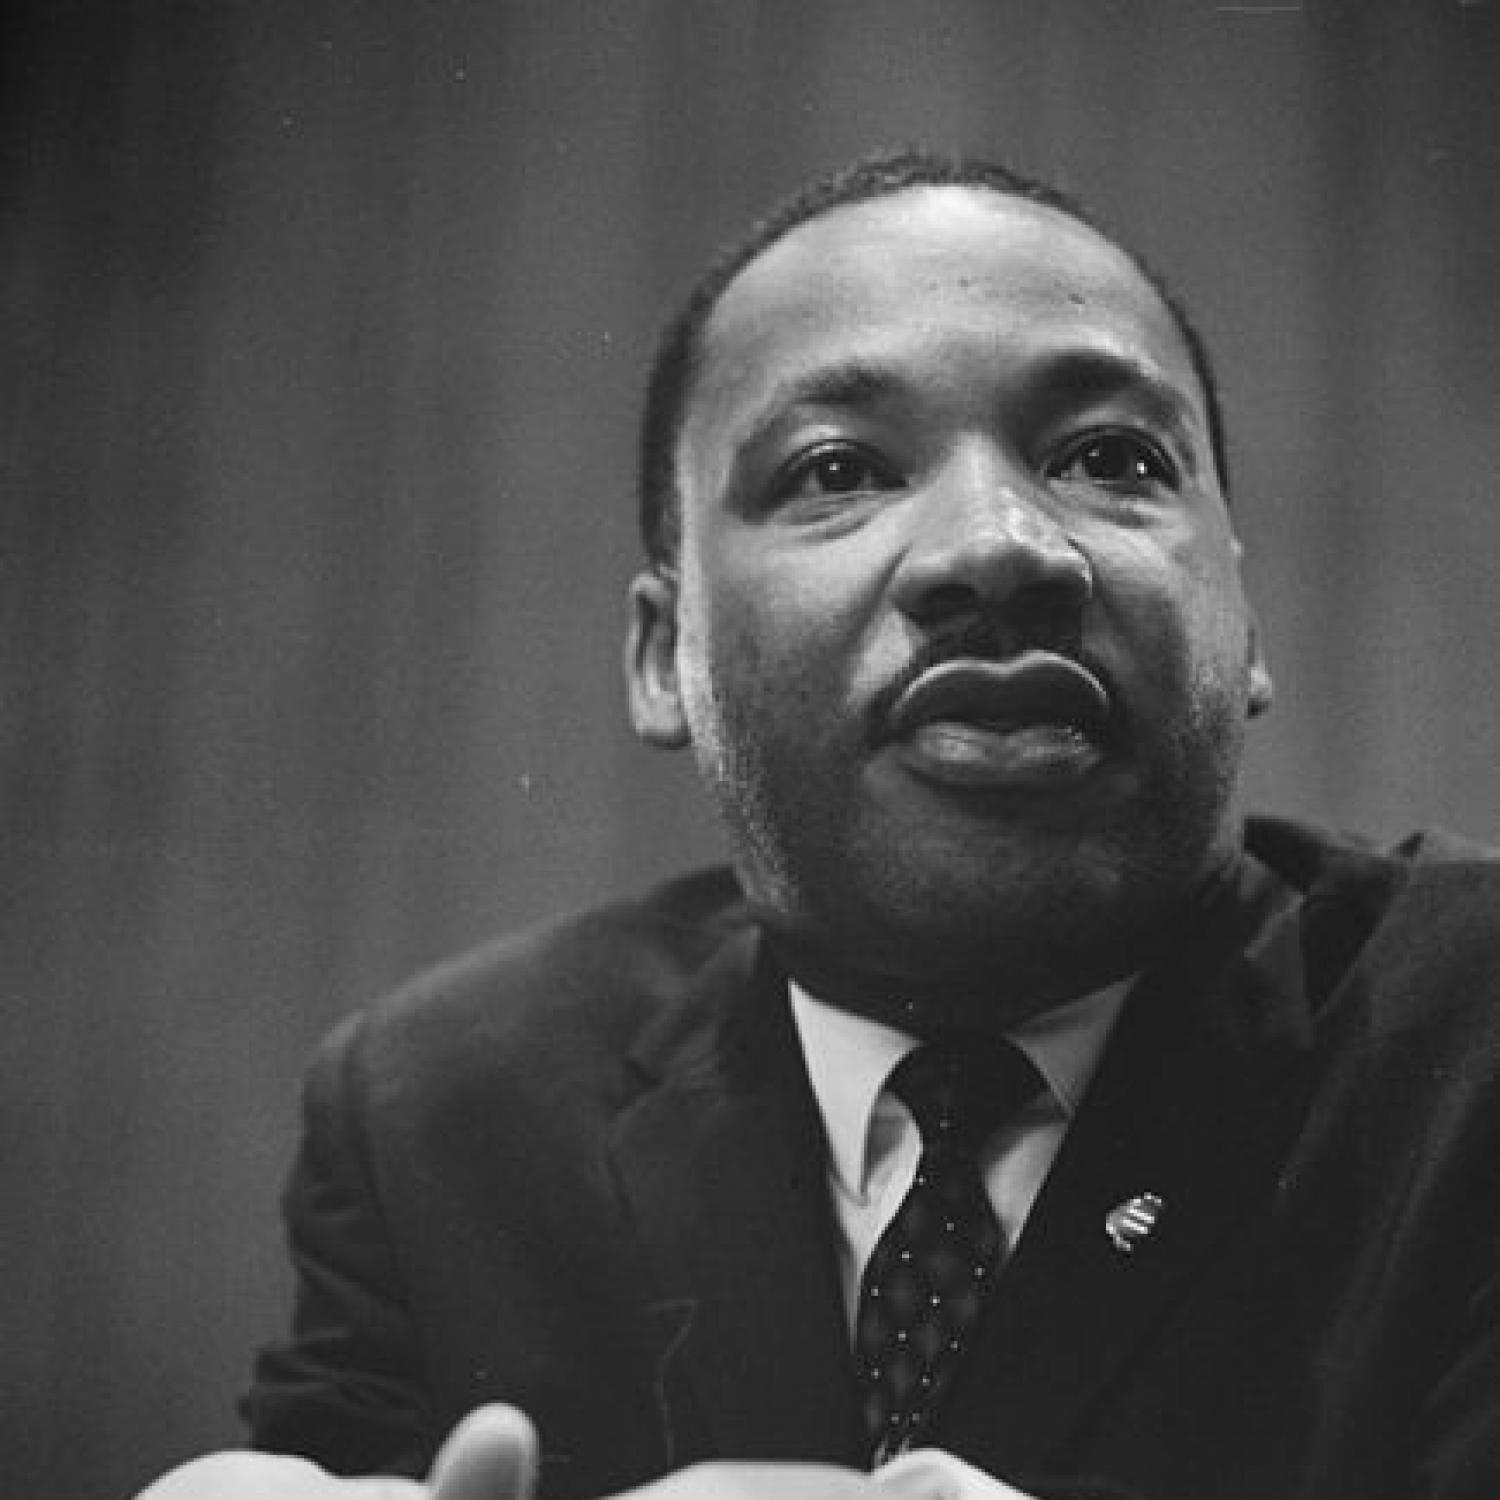 martin luther king facts interesting research article summary sample sample argumentative essay outline